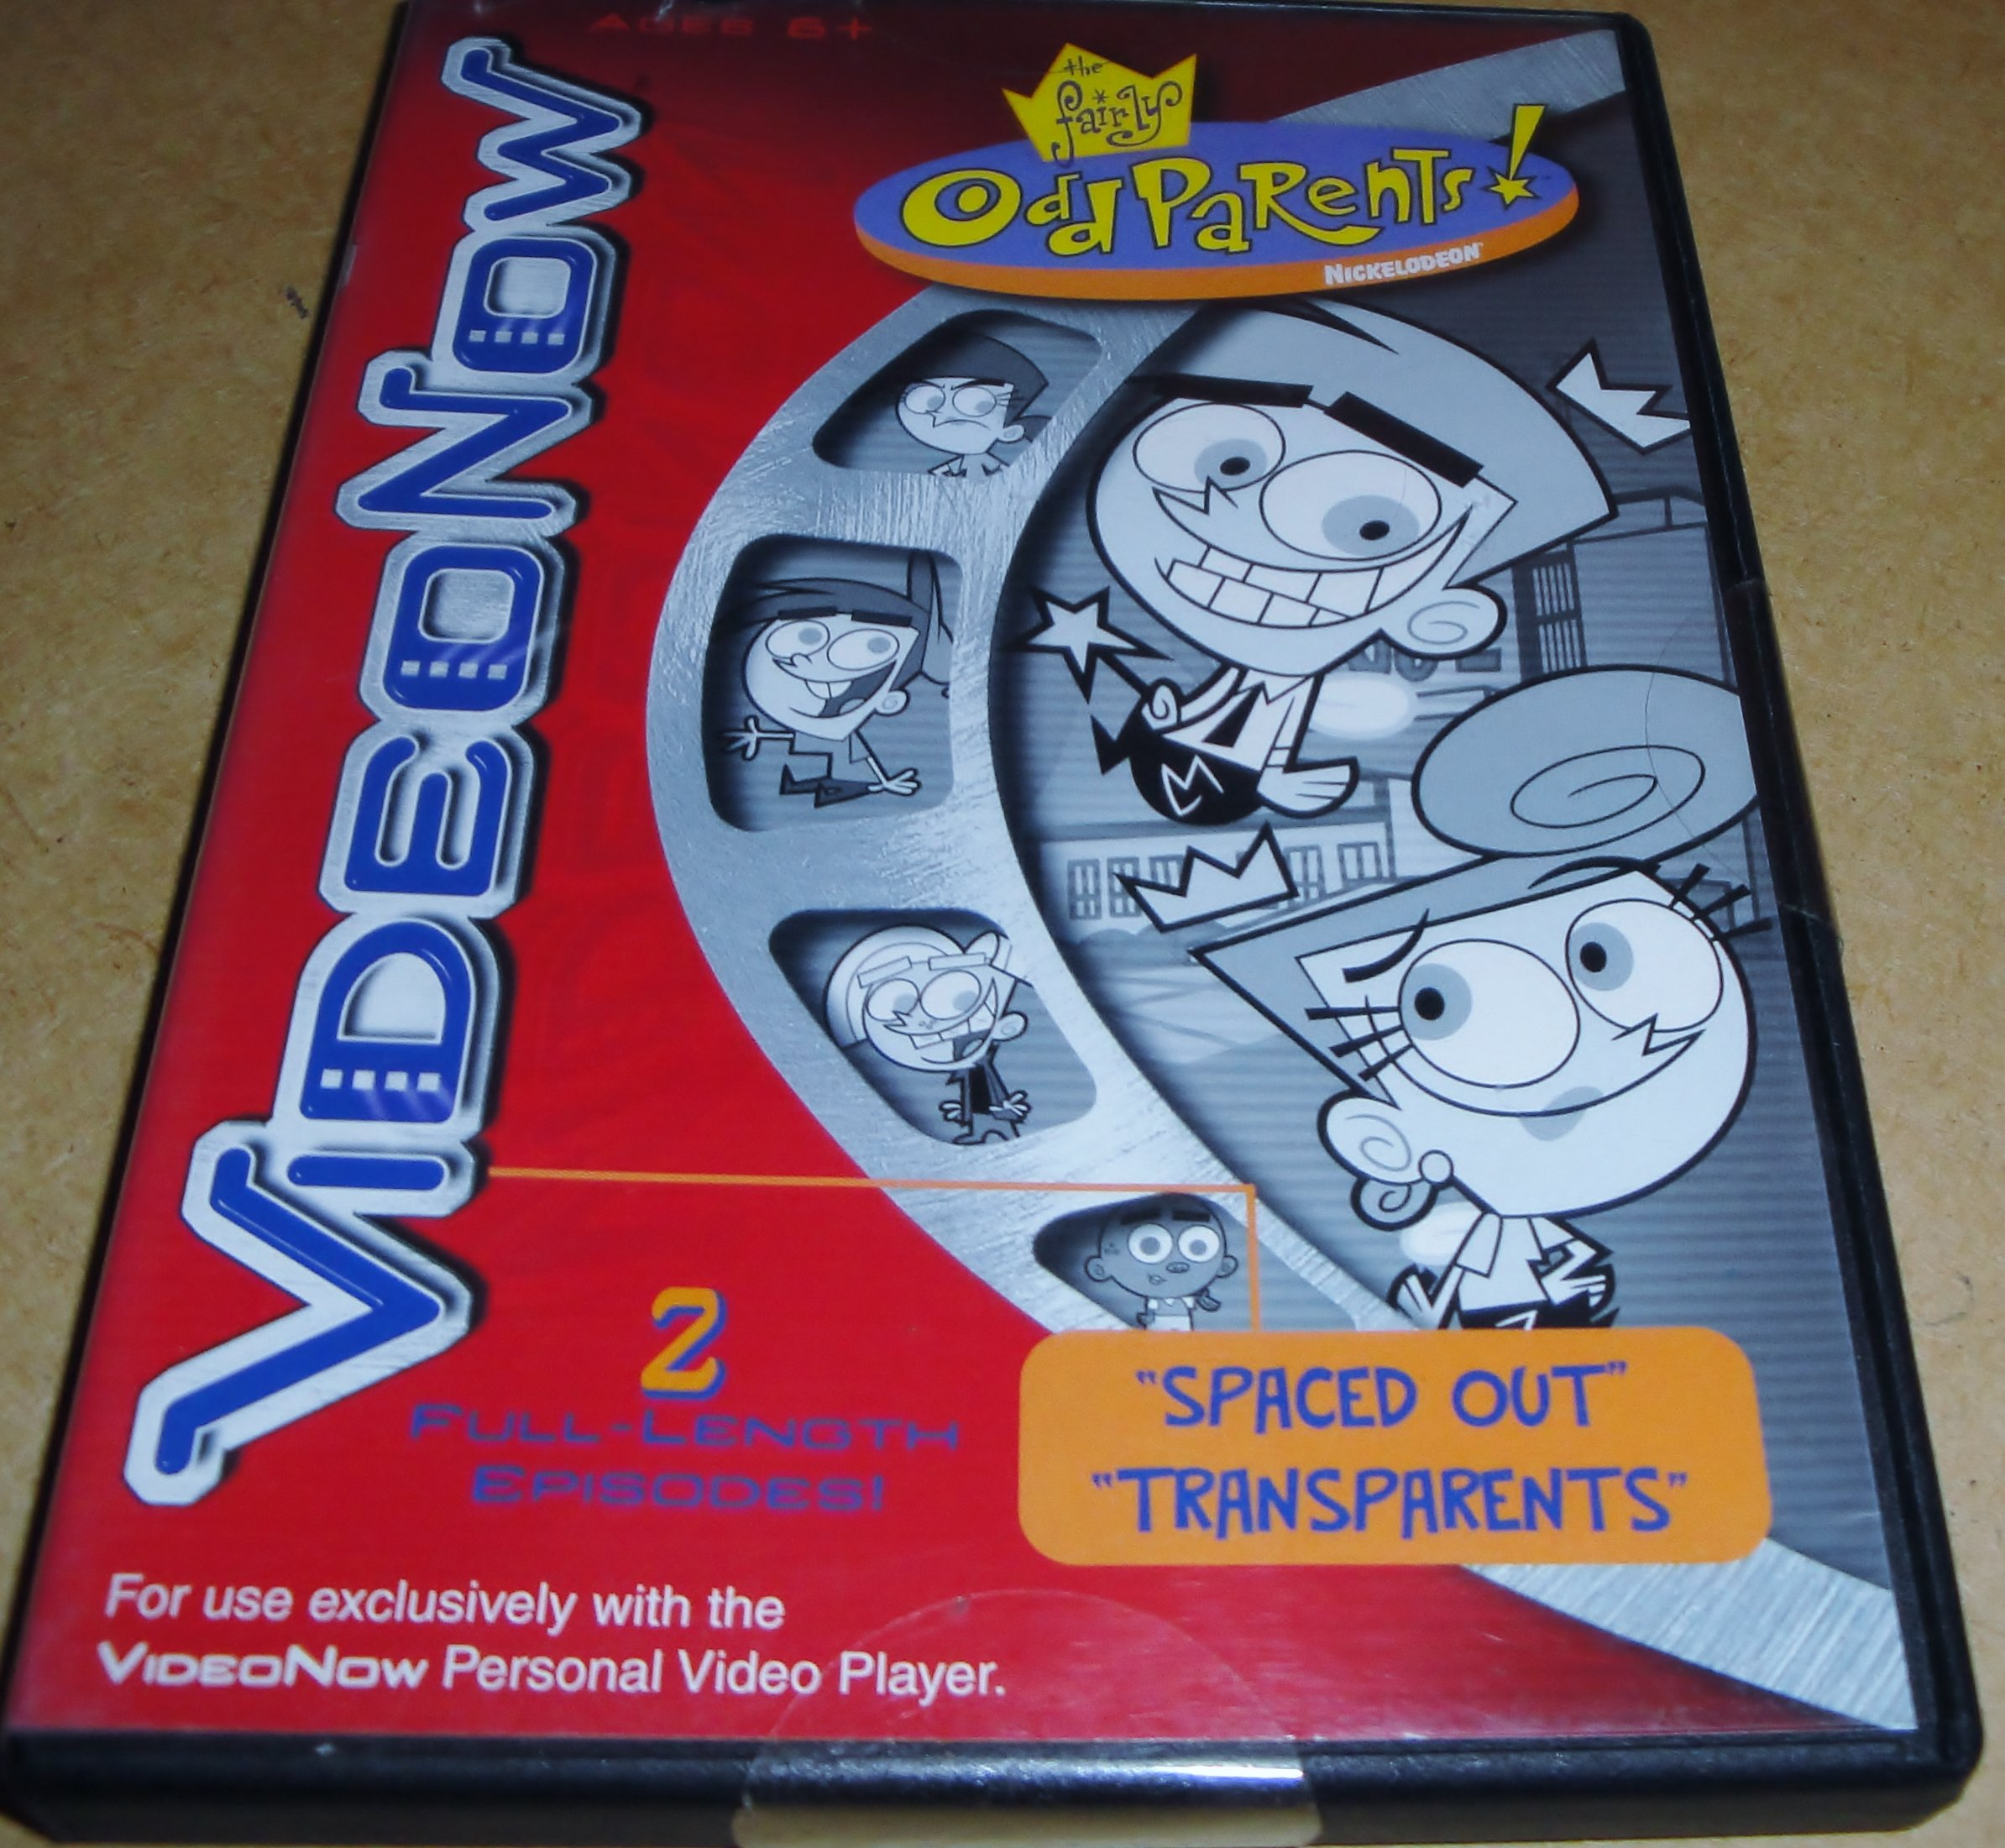 Nickelodeon Video Now The Fairly Odd Parents ''Spaced Out'' & ''Transparents'' by Video Now (Image #1)